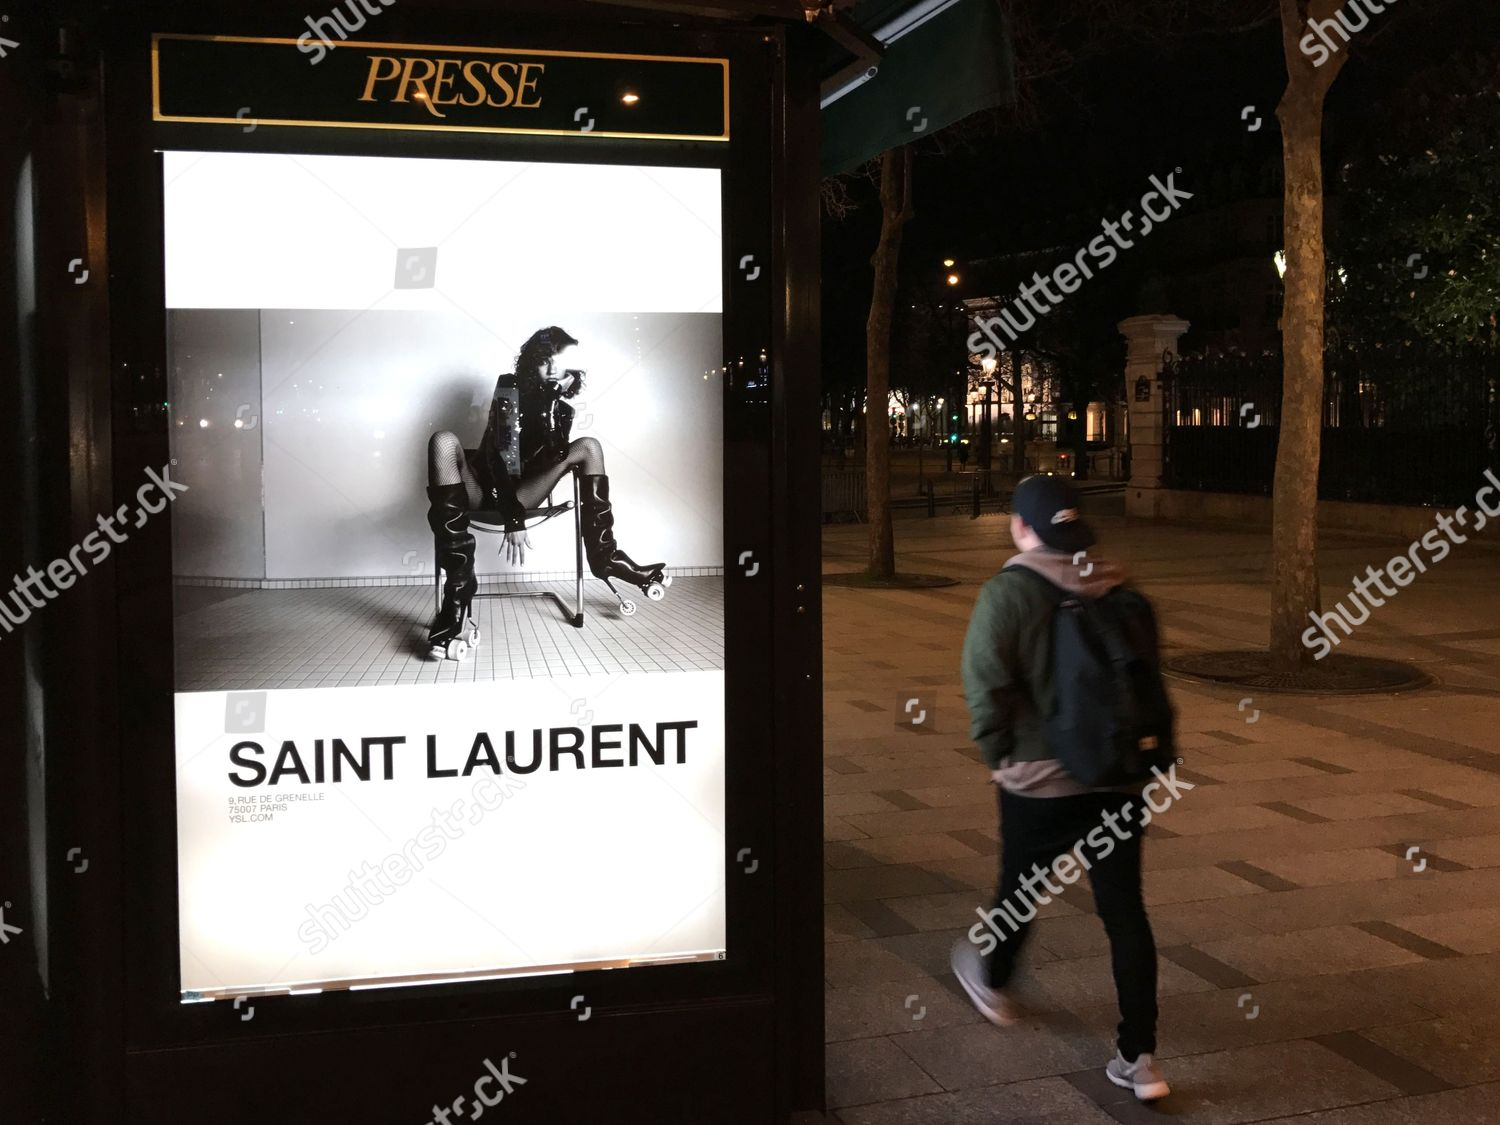 32db39ebf58 Yves Saint Laurent controversial poster campaign, Paris, France Stock Image  by JP Offord for editorial use, Mar 7, 2017